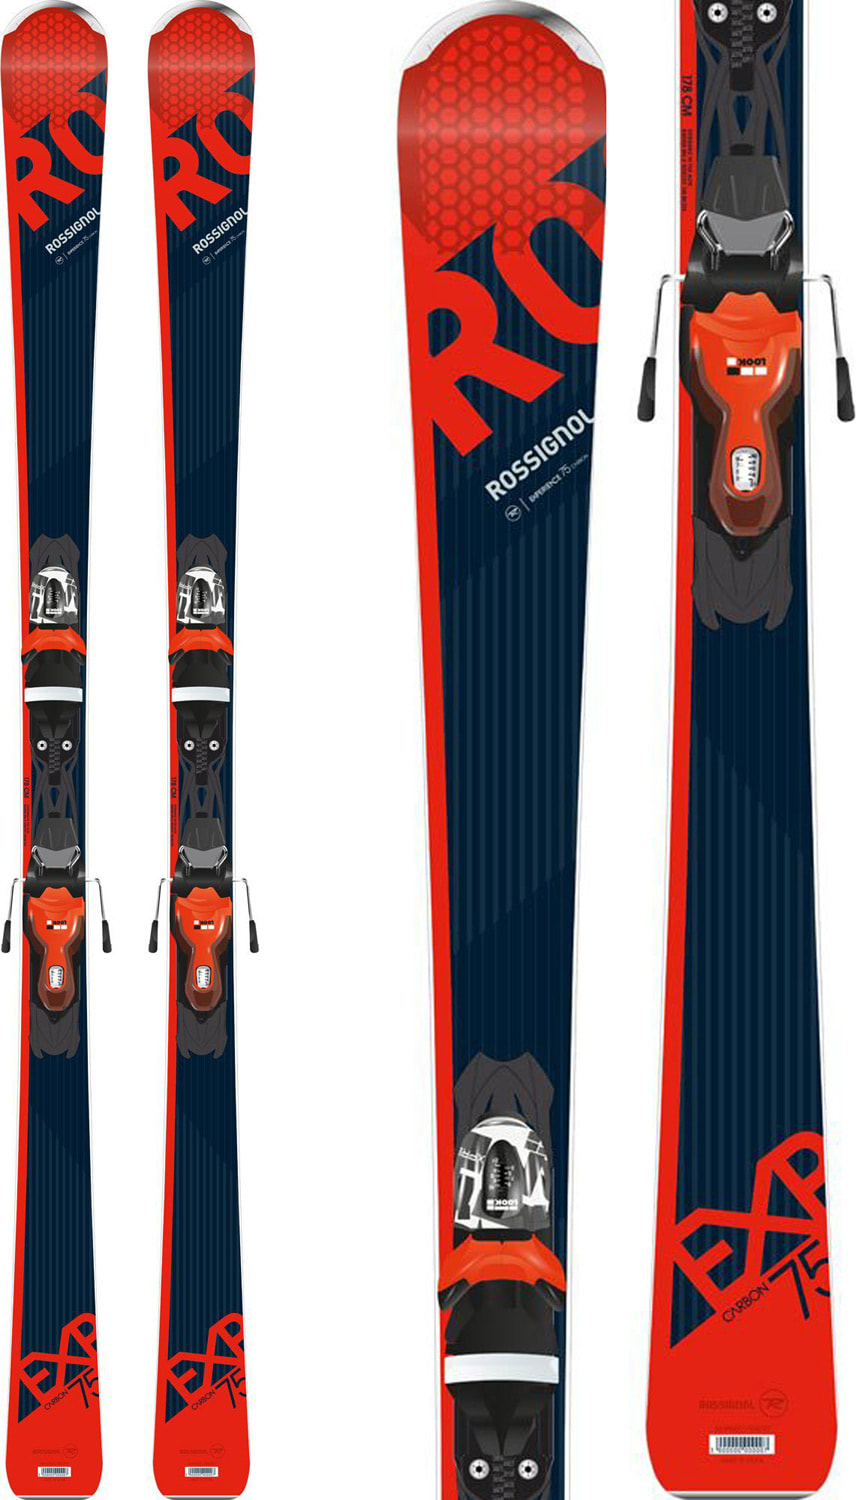 rossignol experience 75 carbon skis w xpress 10 bindings 2018. Black Bedroom Furniture Sets. Home Design Ideas